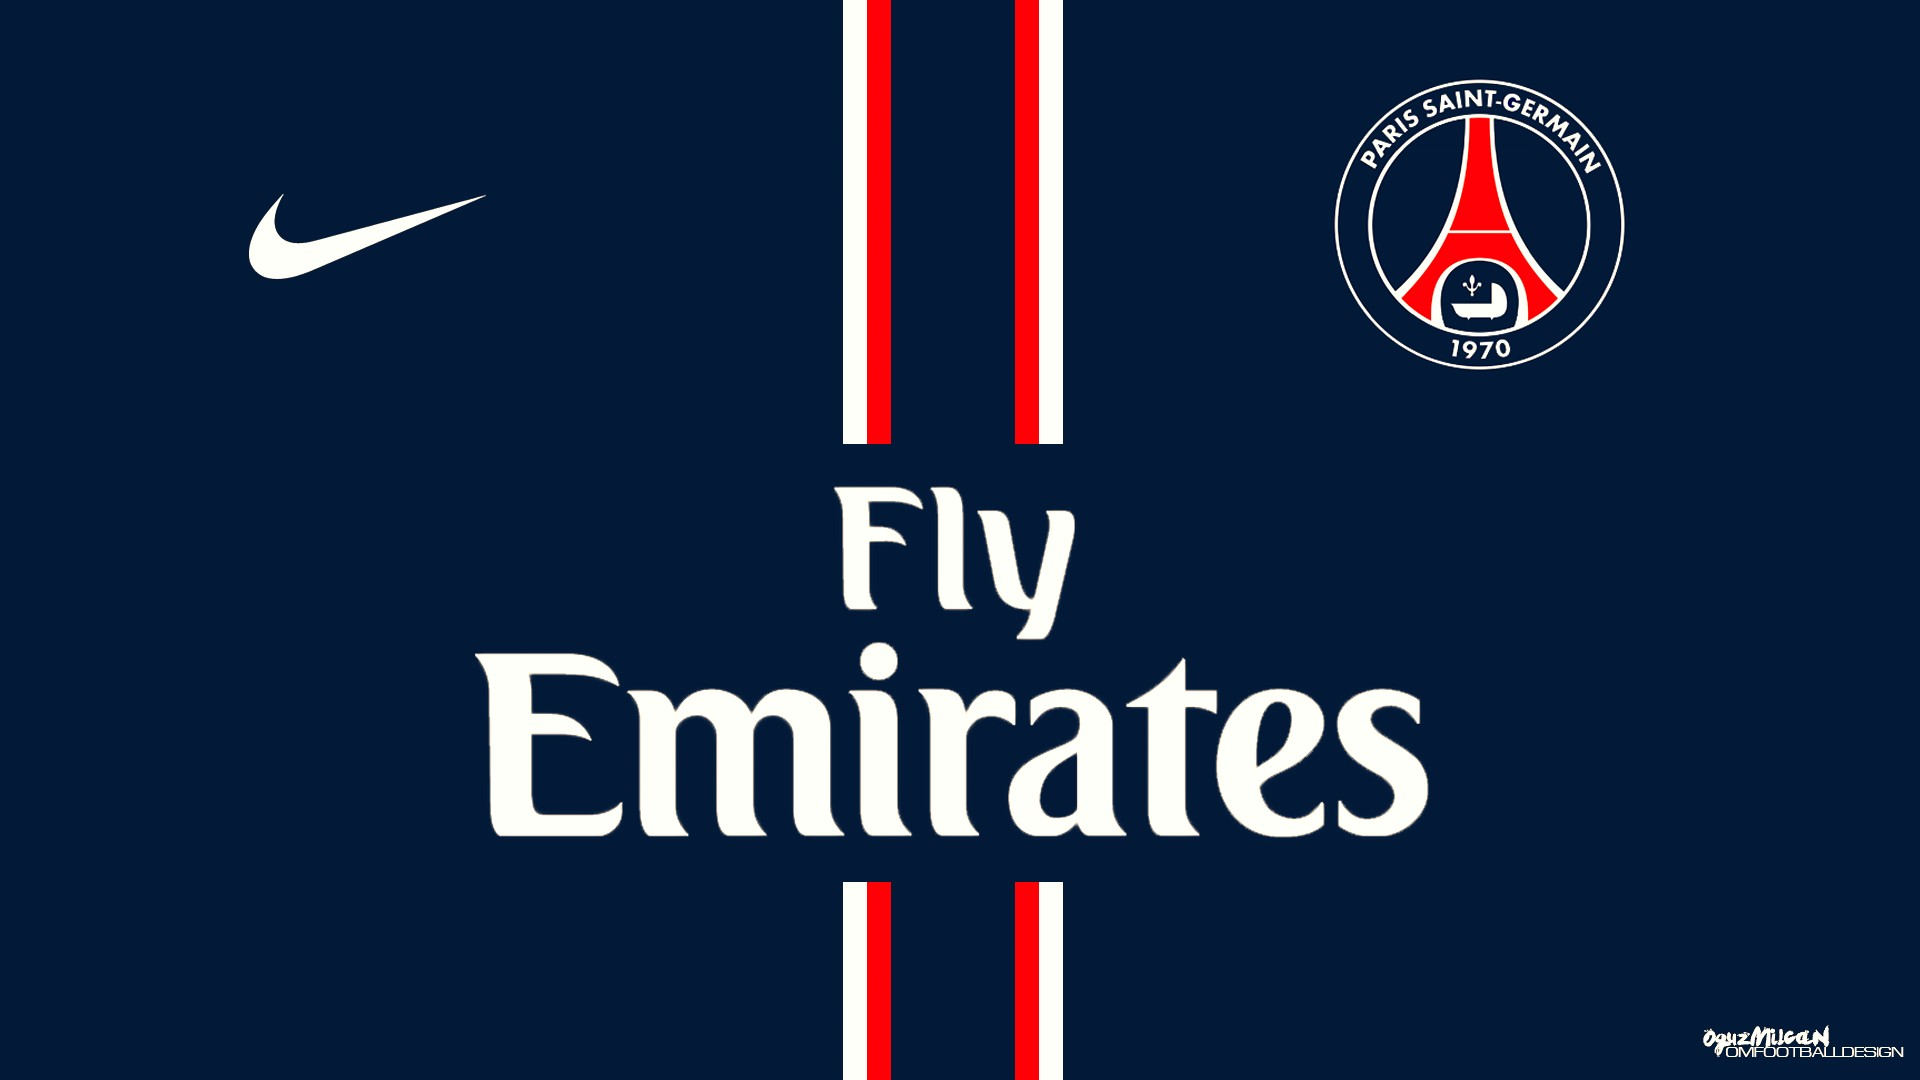 1920x1080 - Paris Saint-Germain F.C. Wallpapers 13